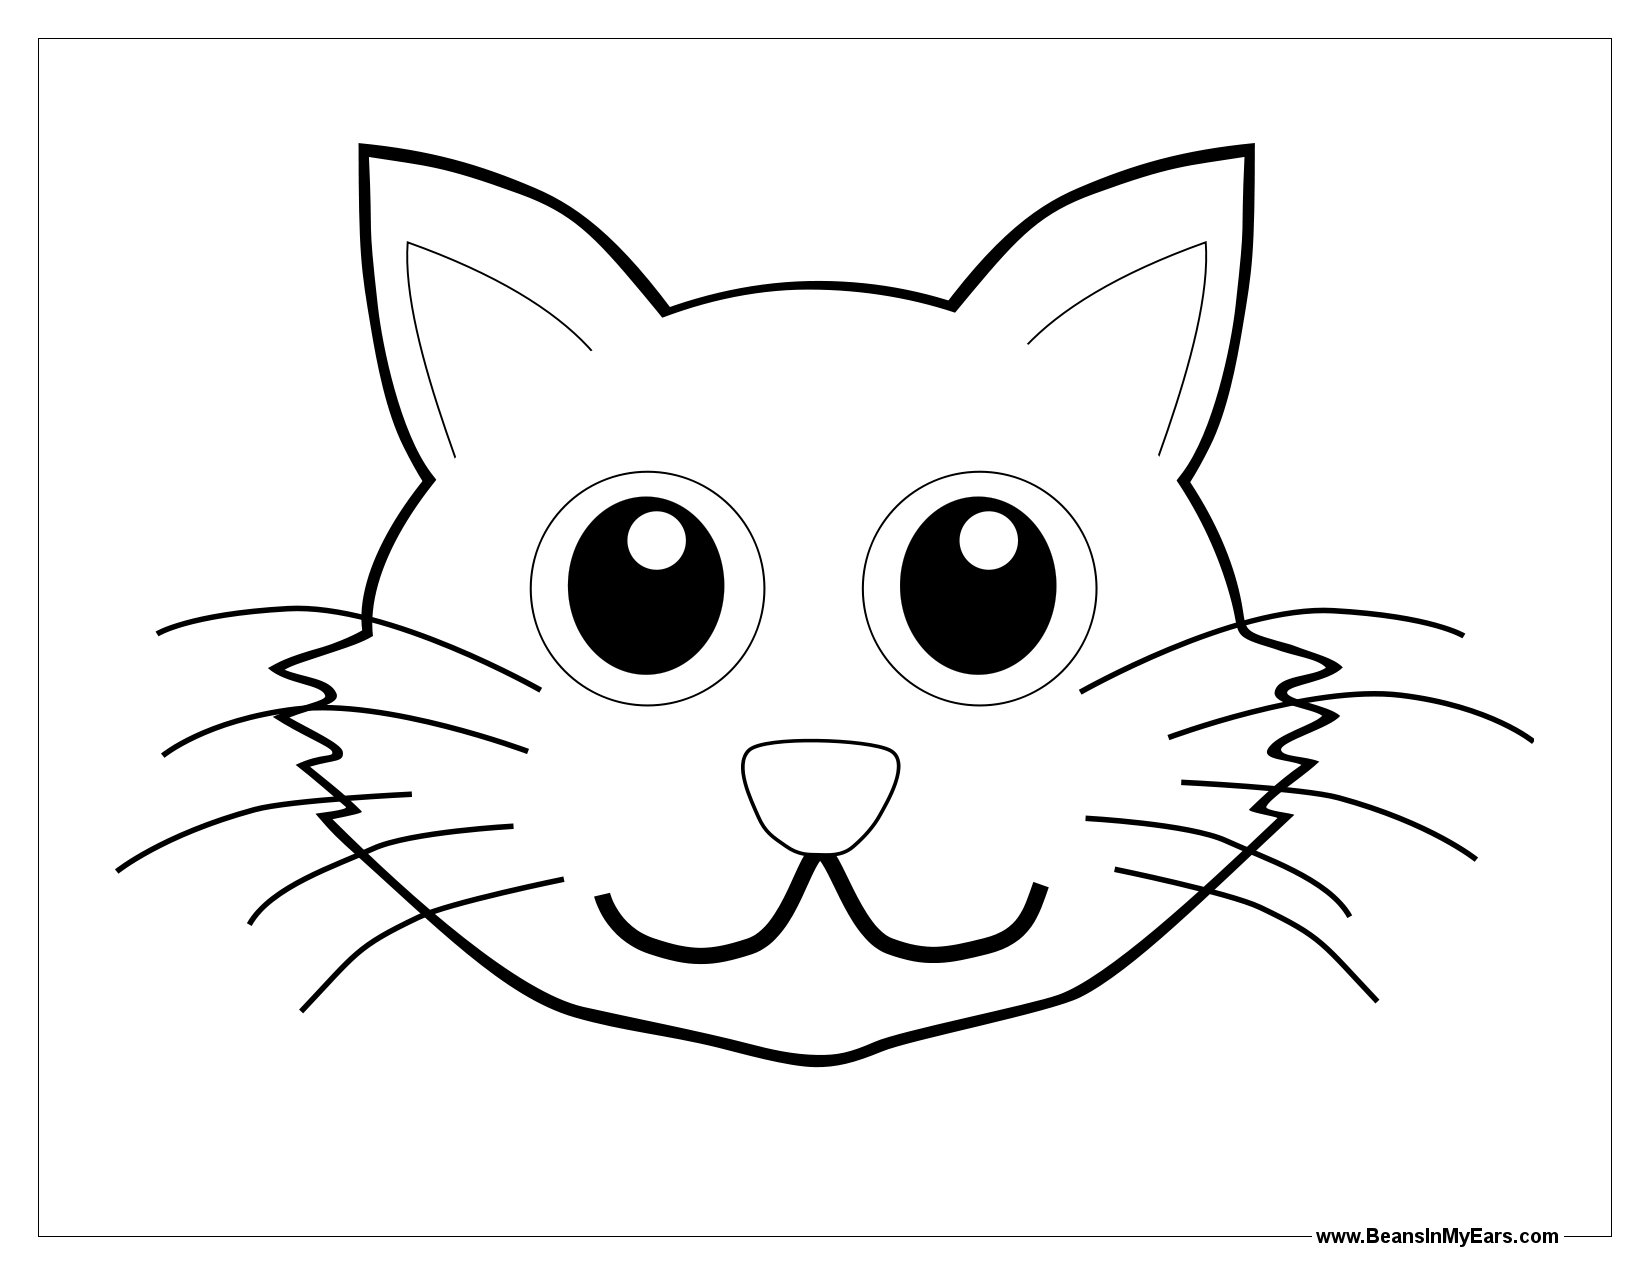 1650x1275 Elephant Face Coloring Page